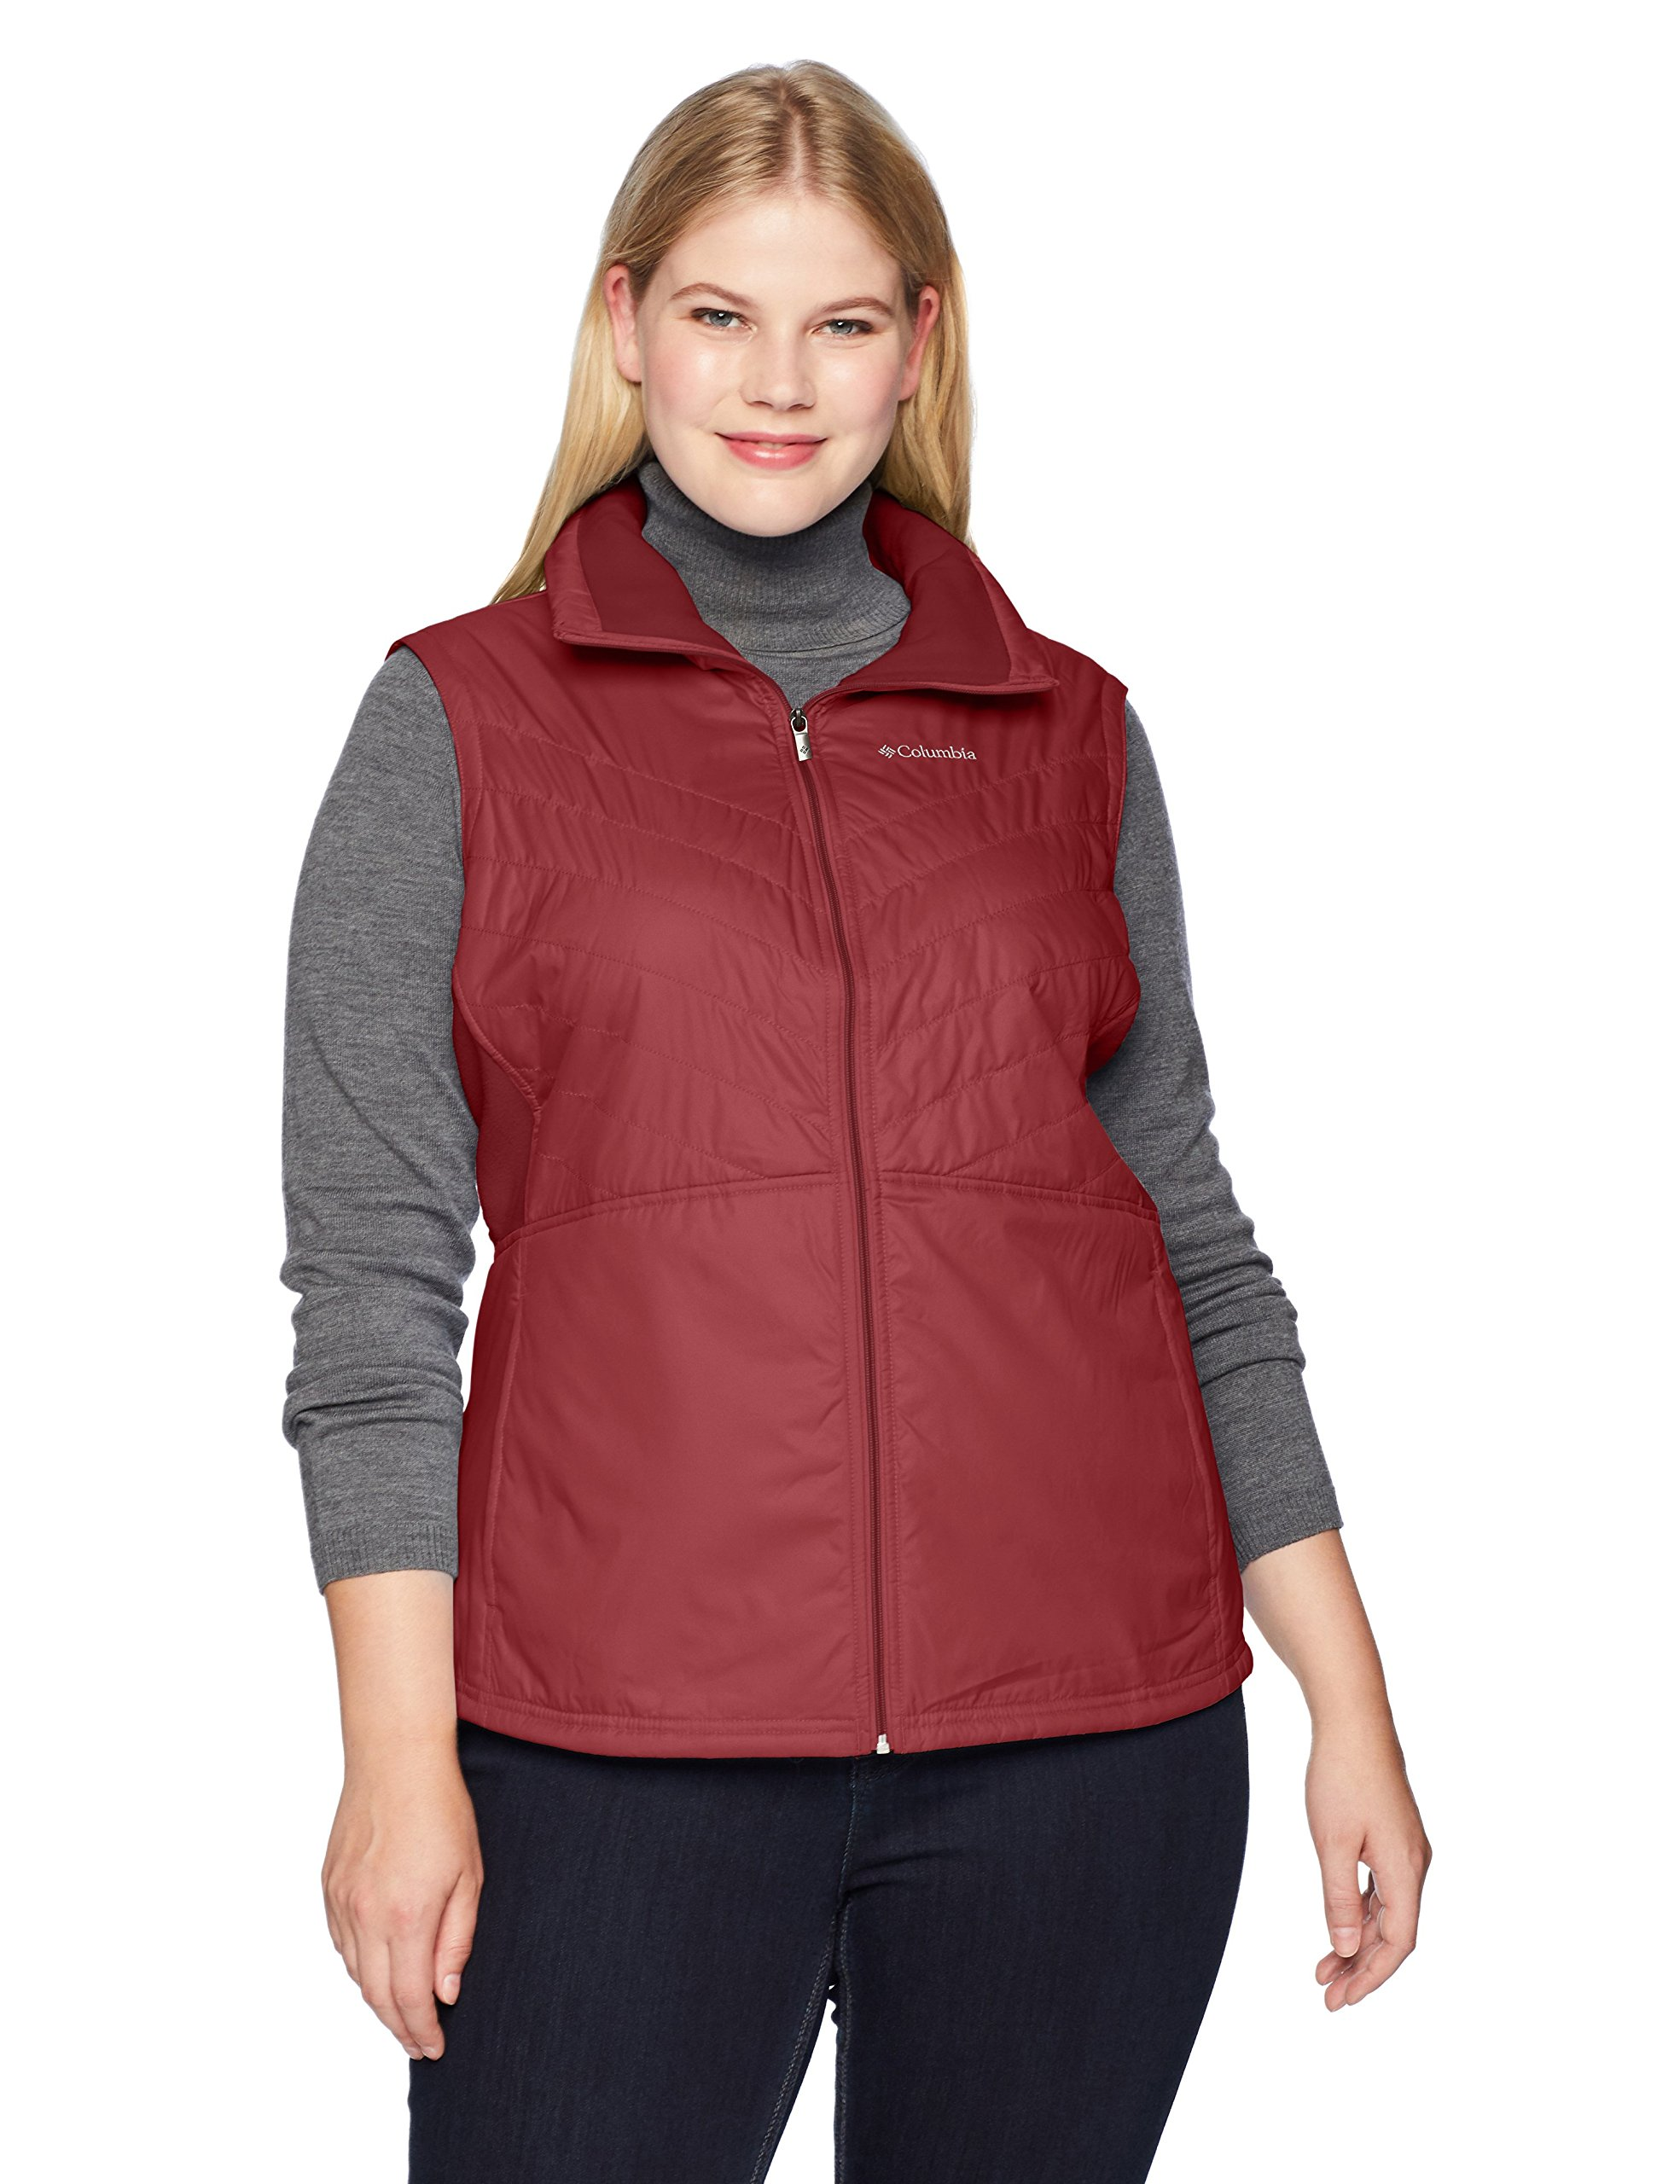 Columbia Women's Mix It Around II Plus Size Vest, Garnet red, 1X